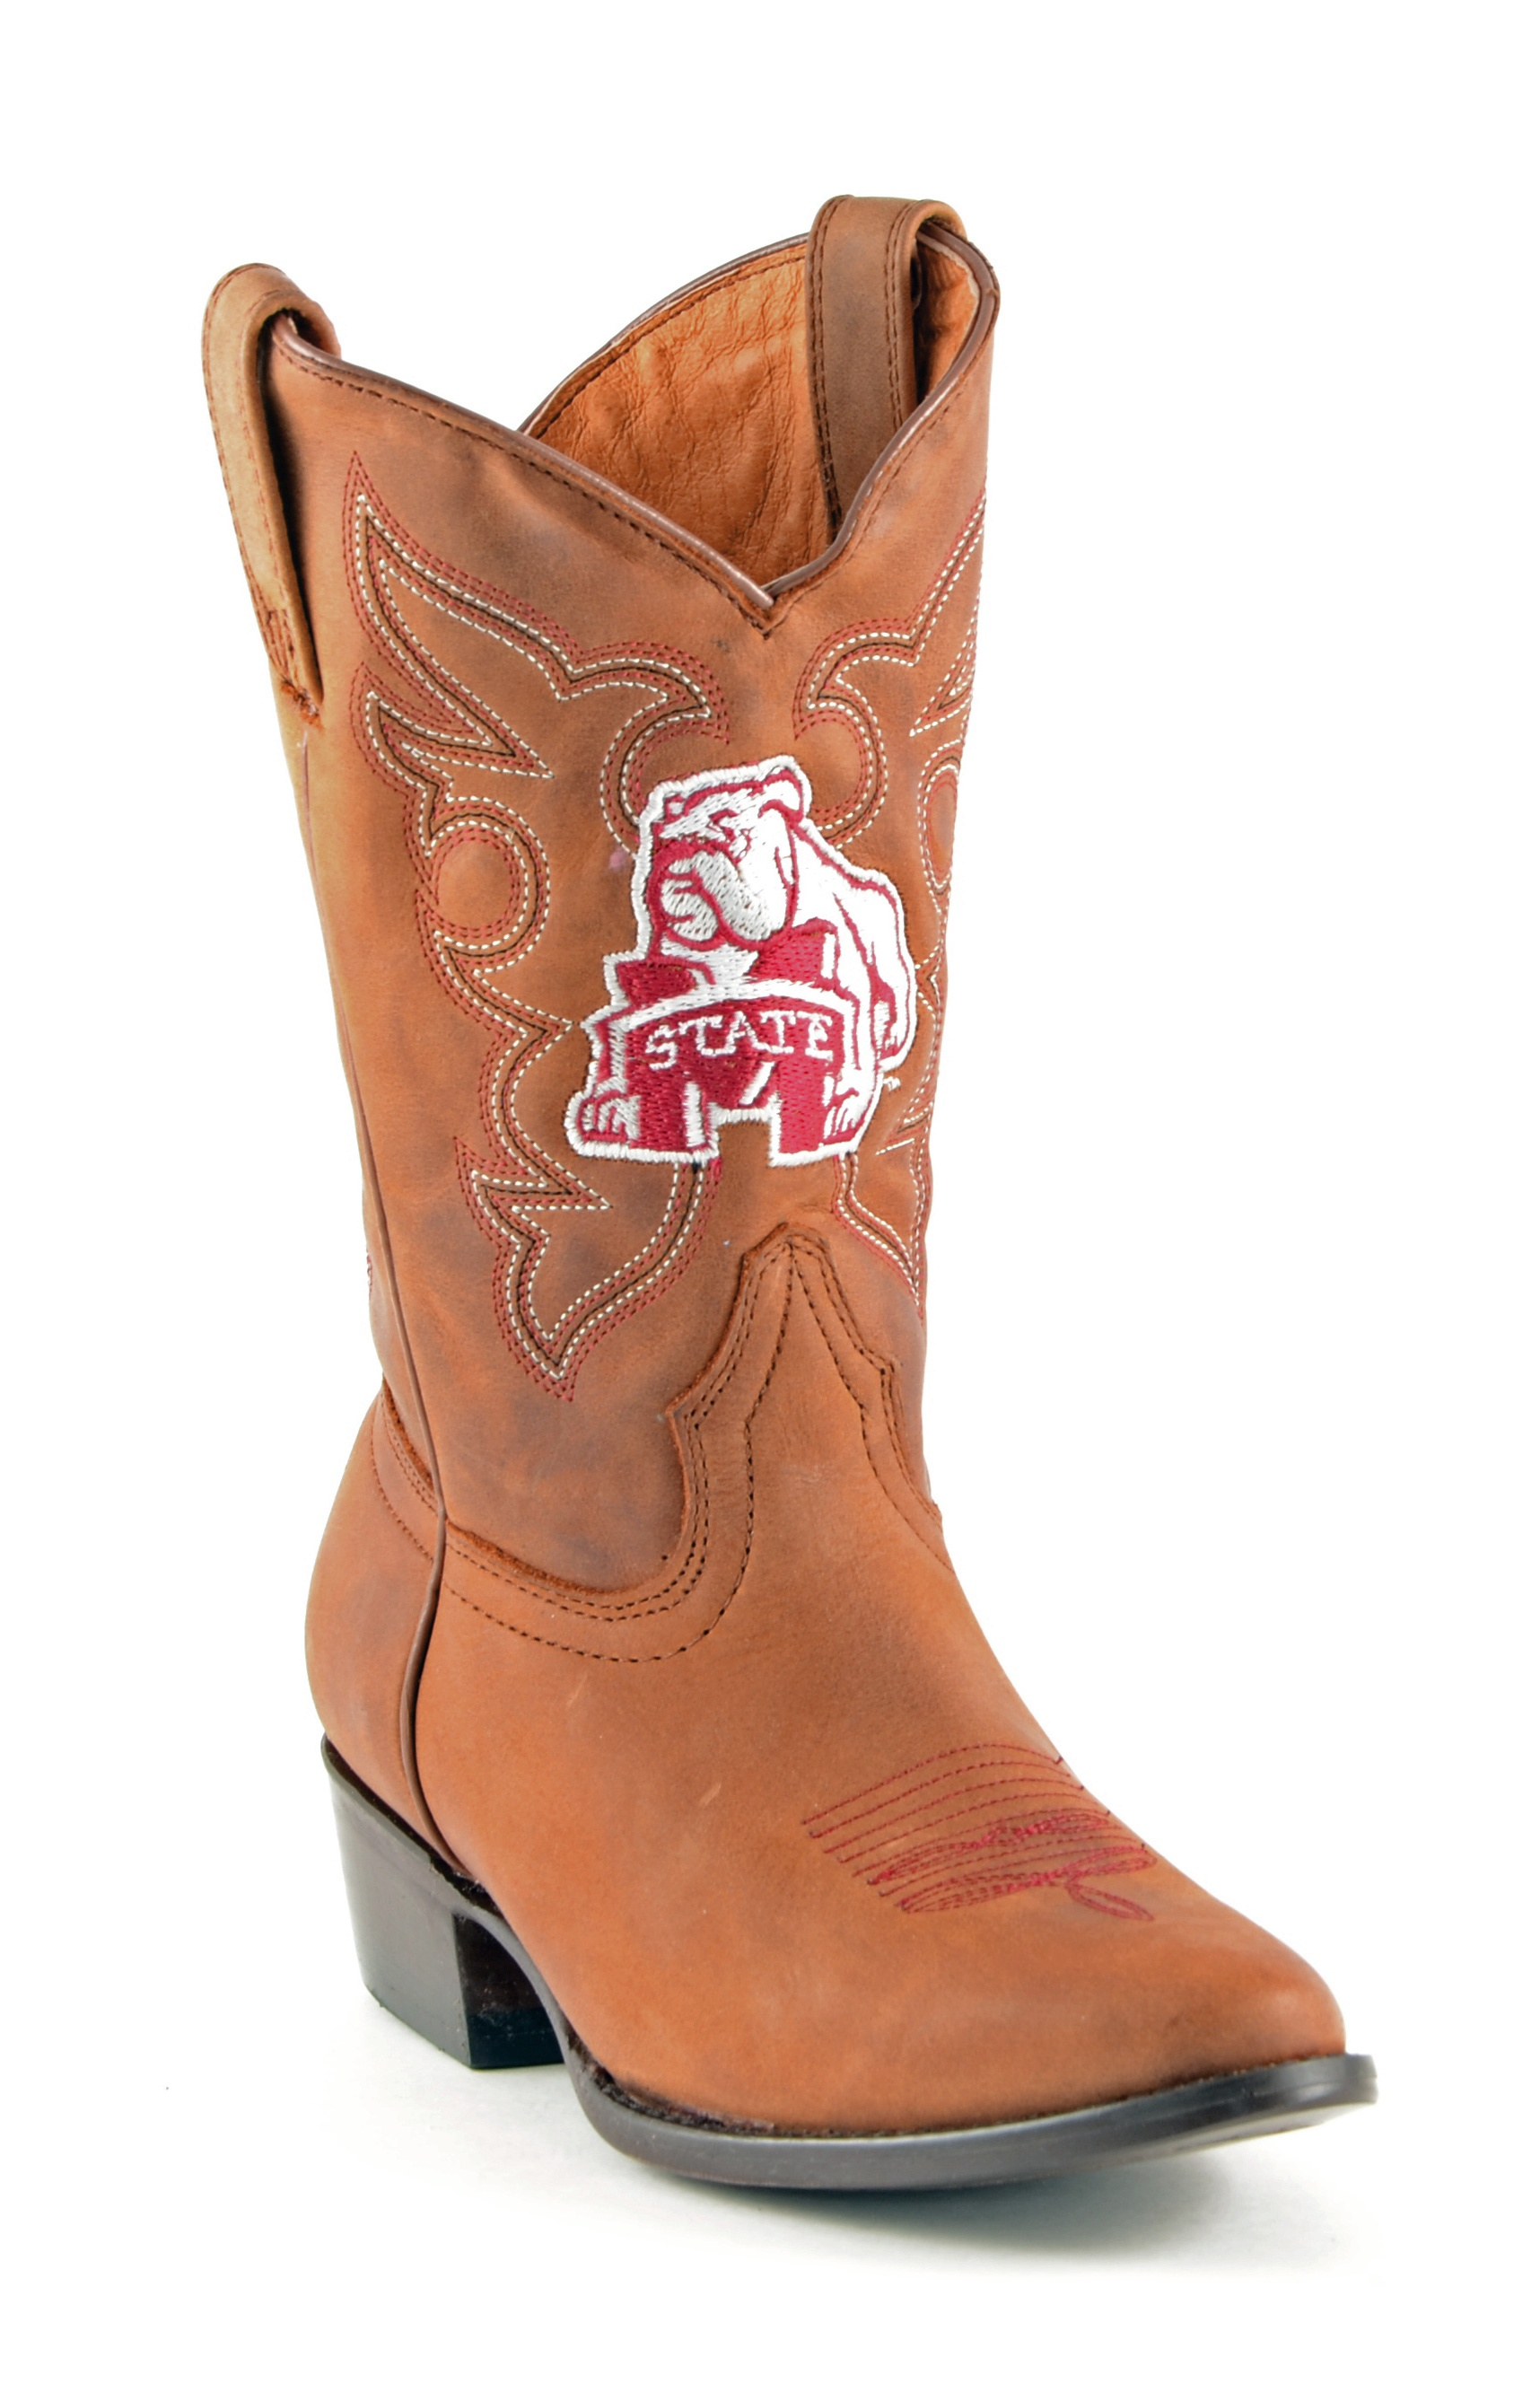 Gameday New Boys Honey Leather Mississippi State Western Cowboy Boots by GameDay Boots